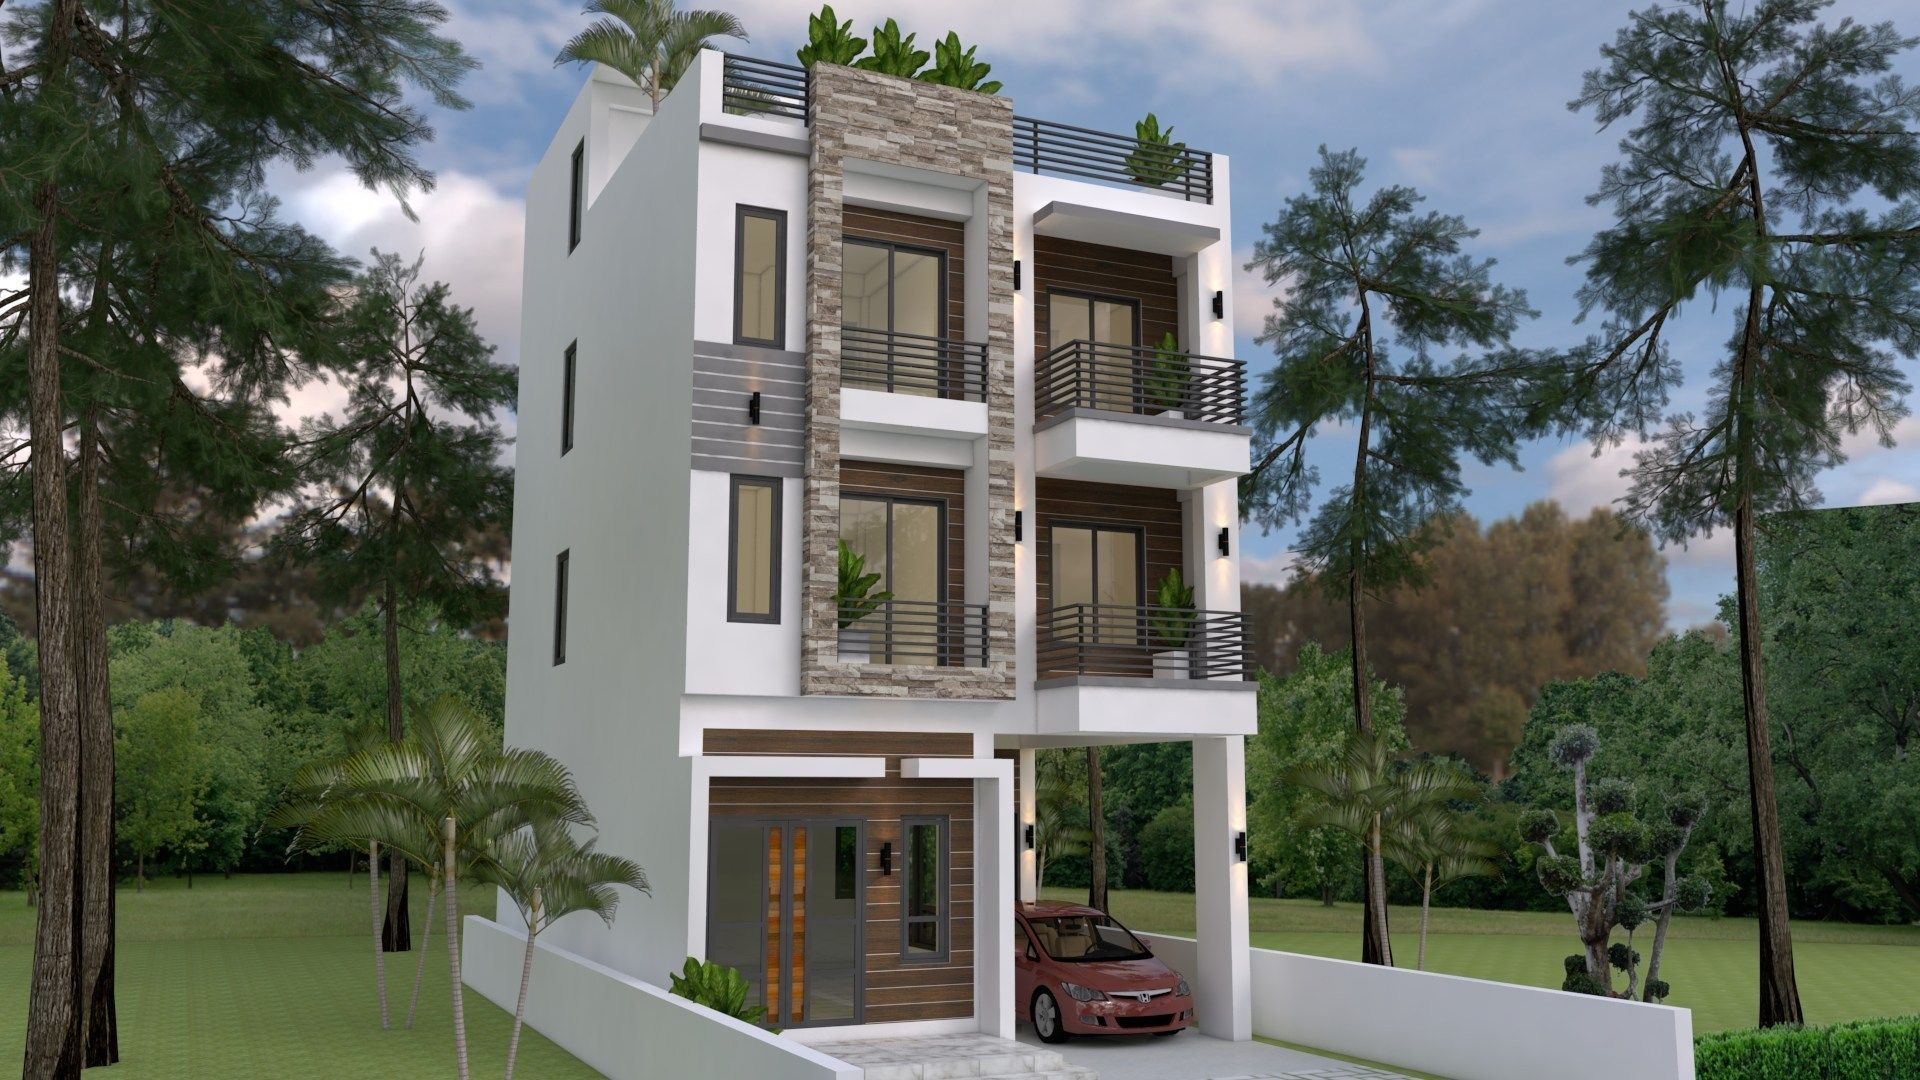 Home Design Plan 7x10m With 6 Bedrooms Kerala House Design Home Design Plan House Design